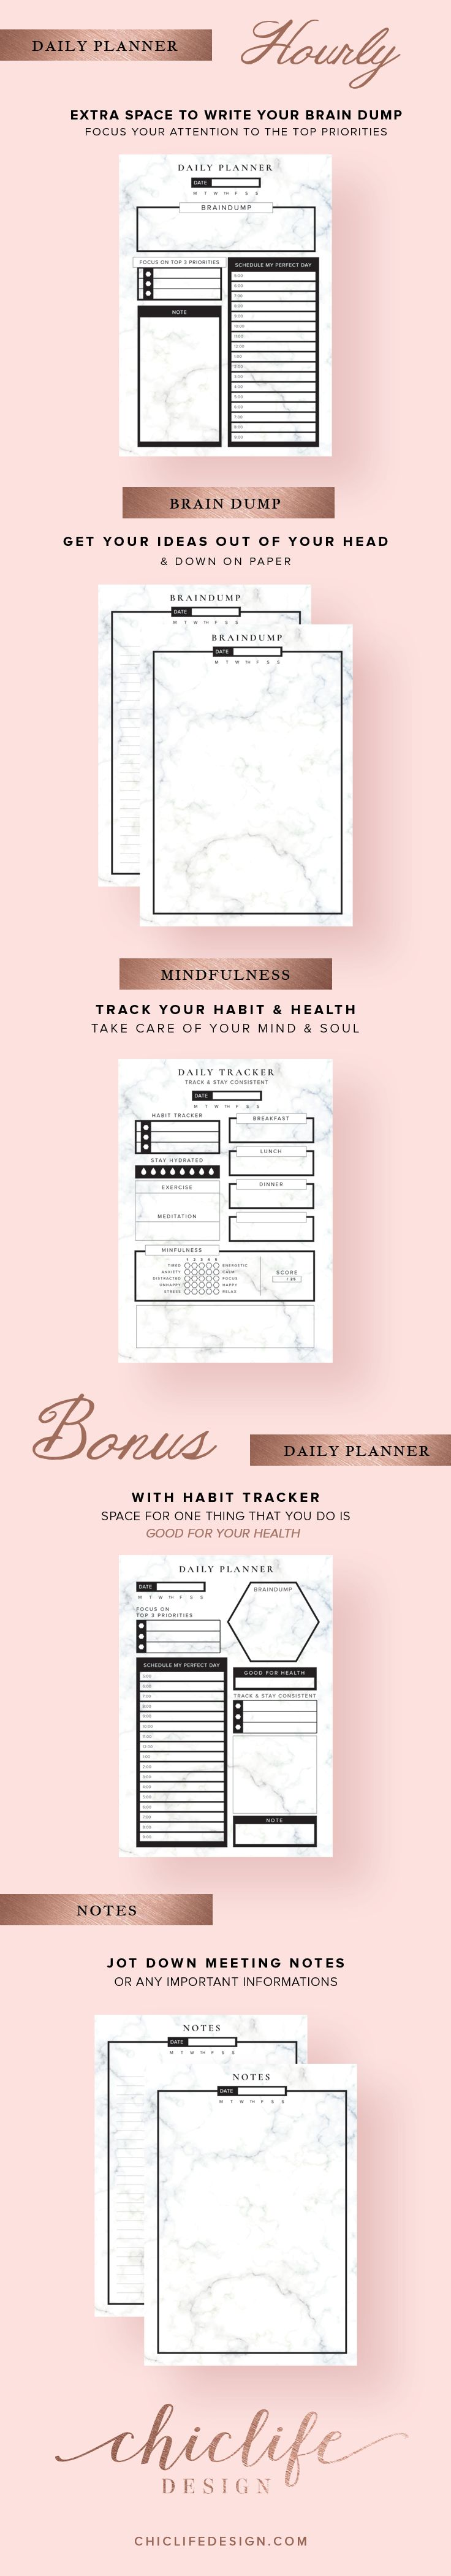 Hourly Daily Planner with marble texture